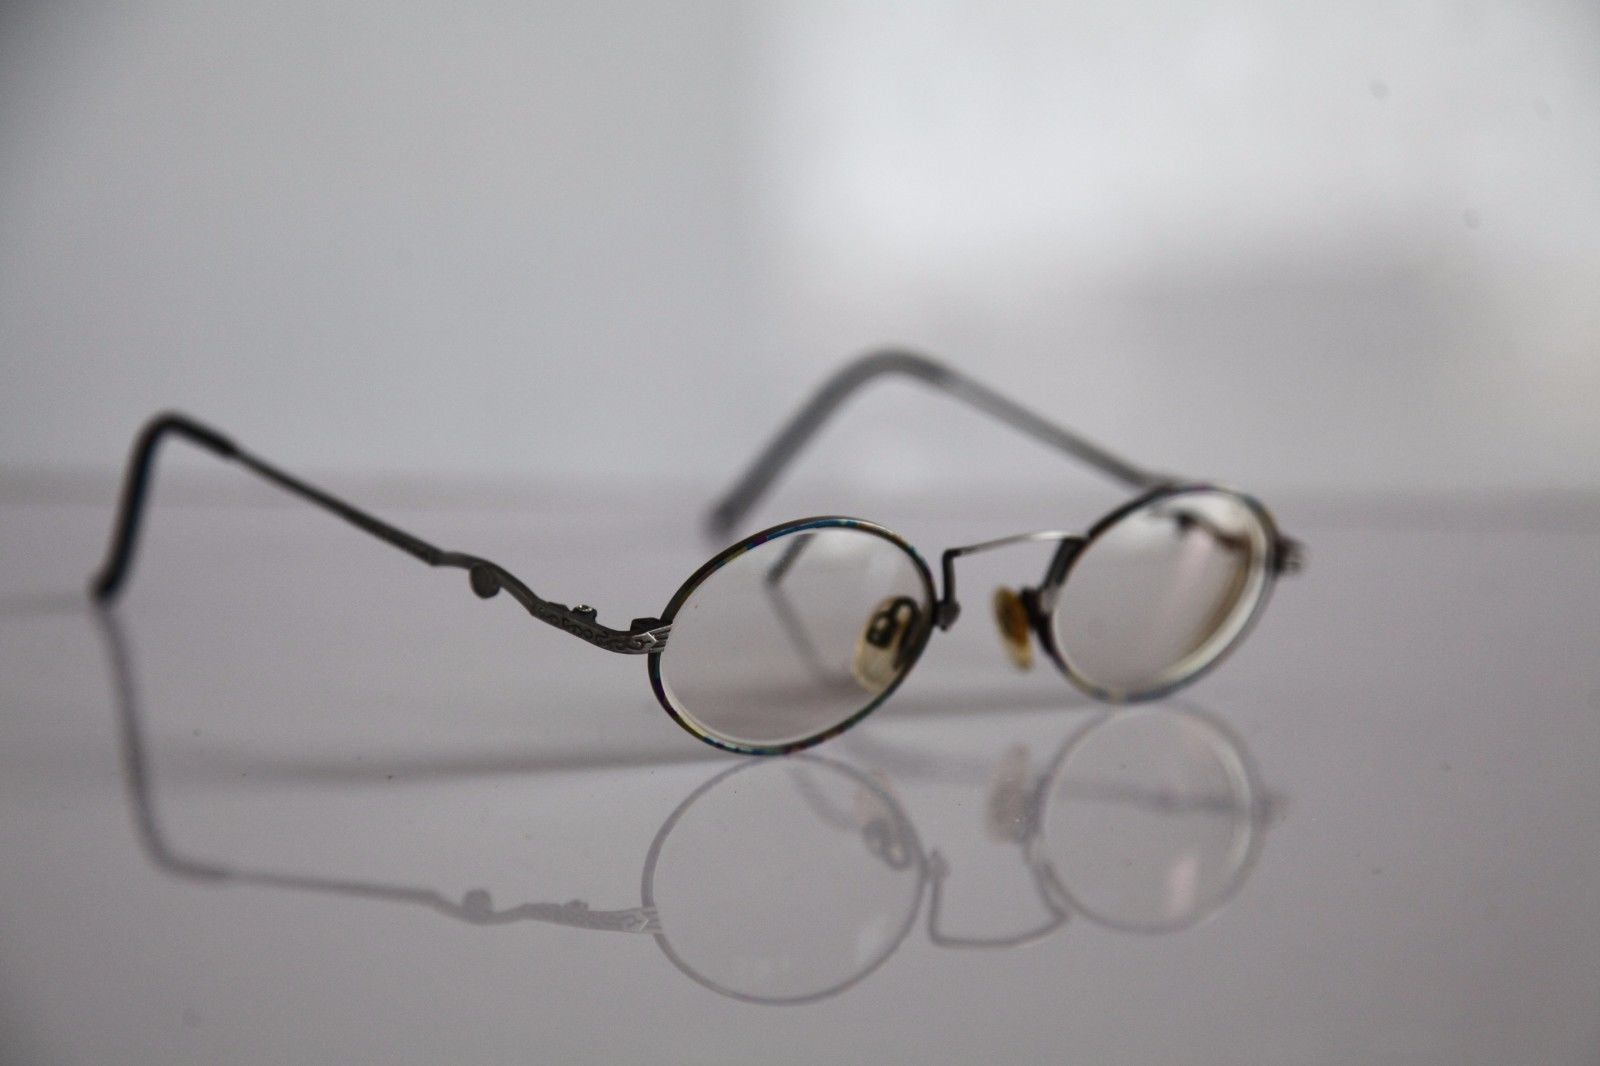 CLAUDIO P. Eyewear, Silver Frame, RX-Able Prescription lenses. Made in Italy image 2